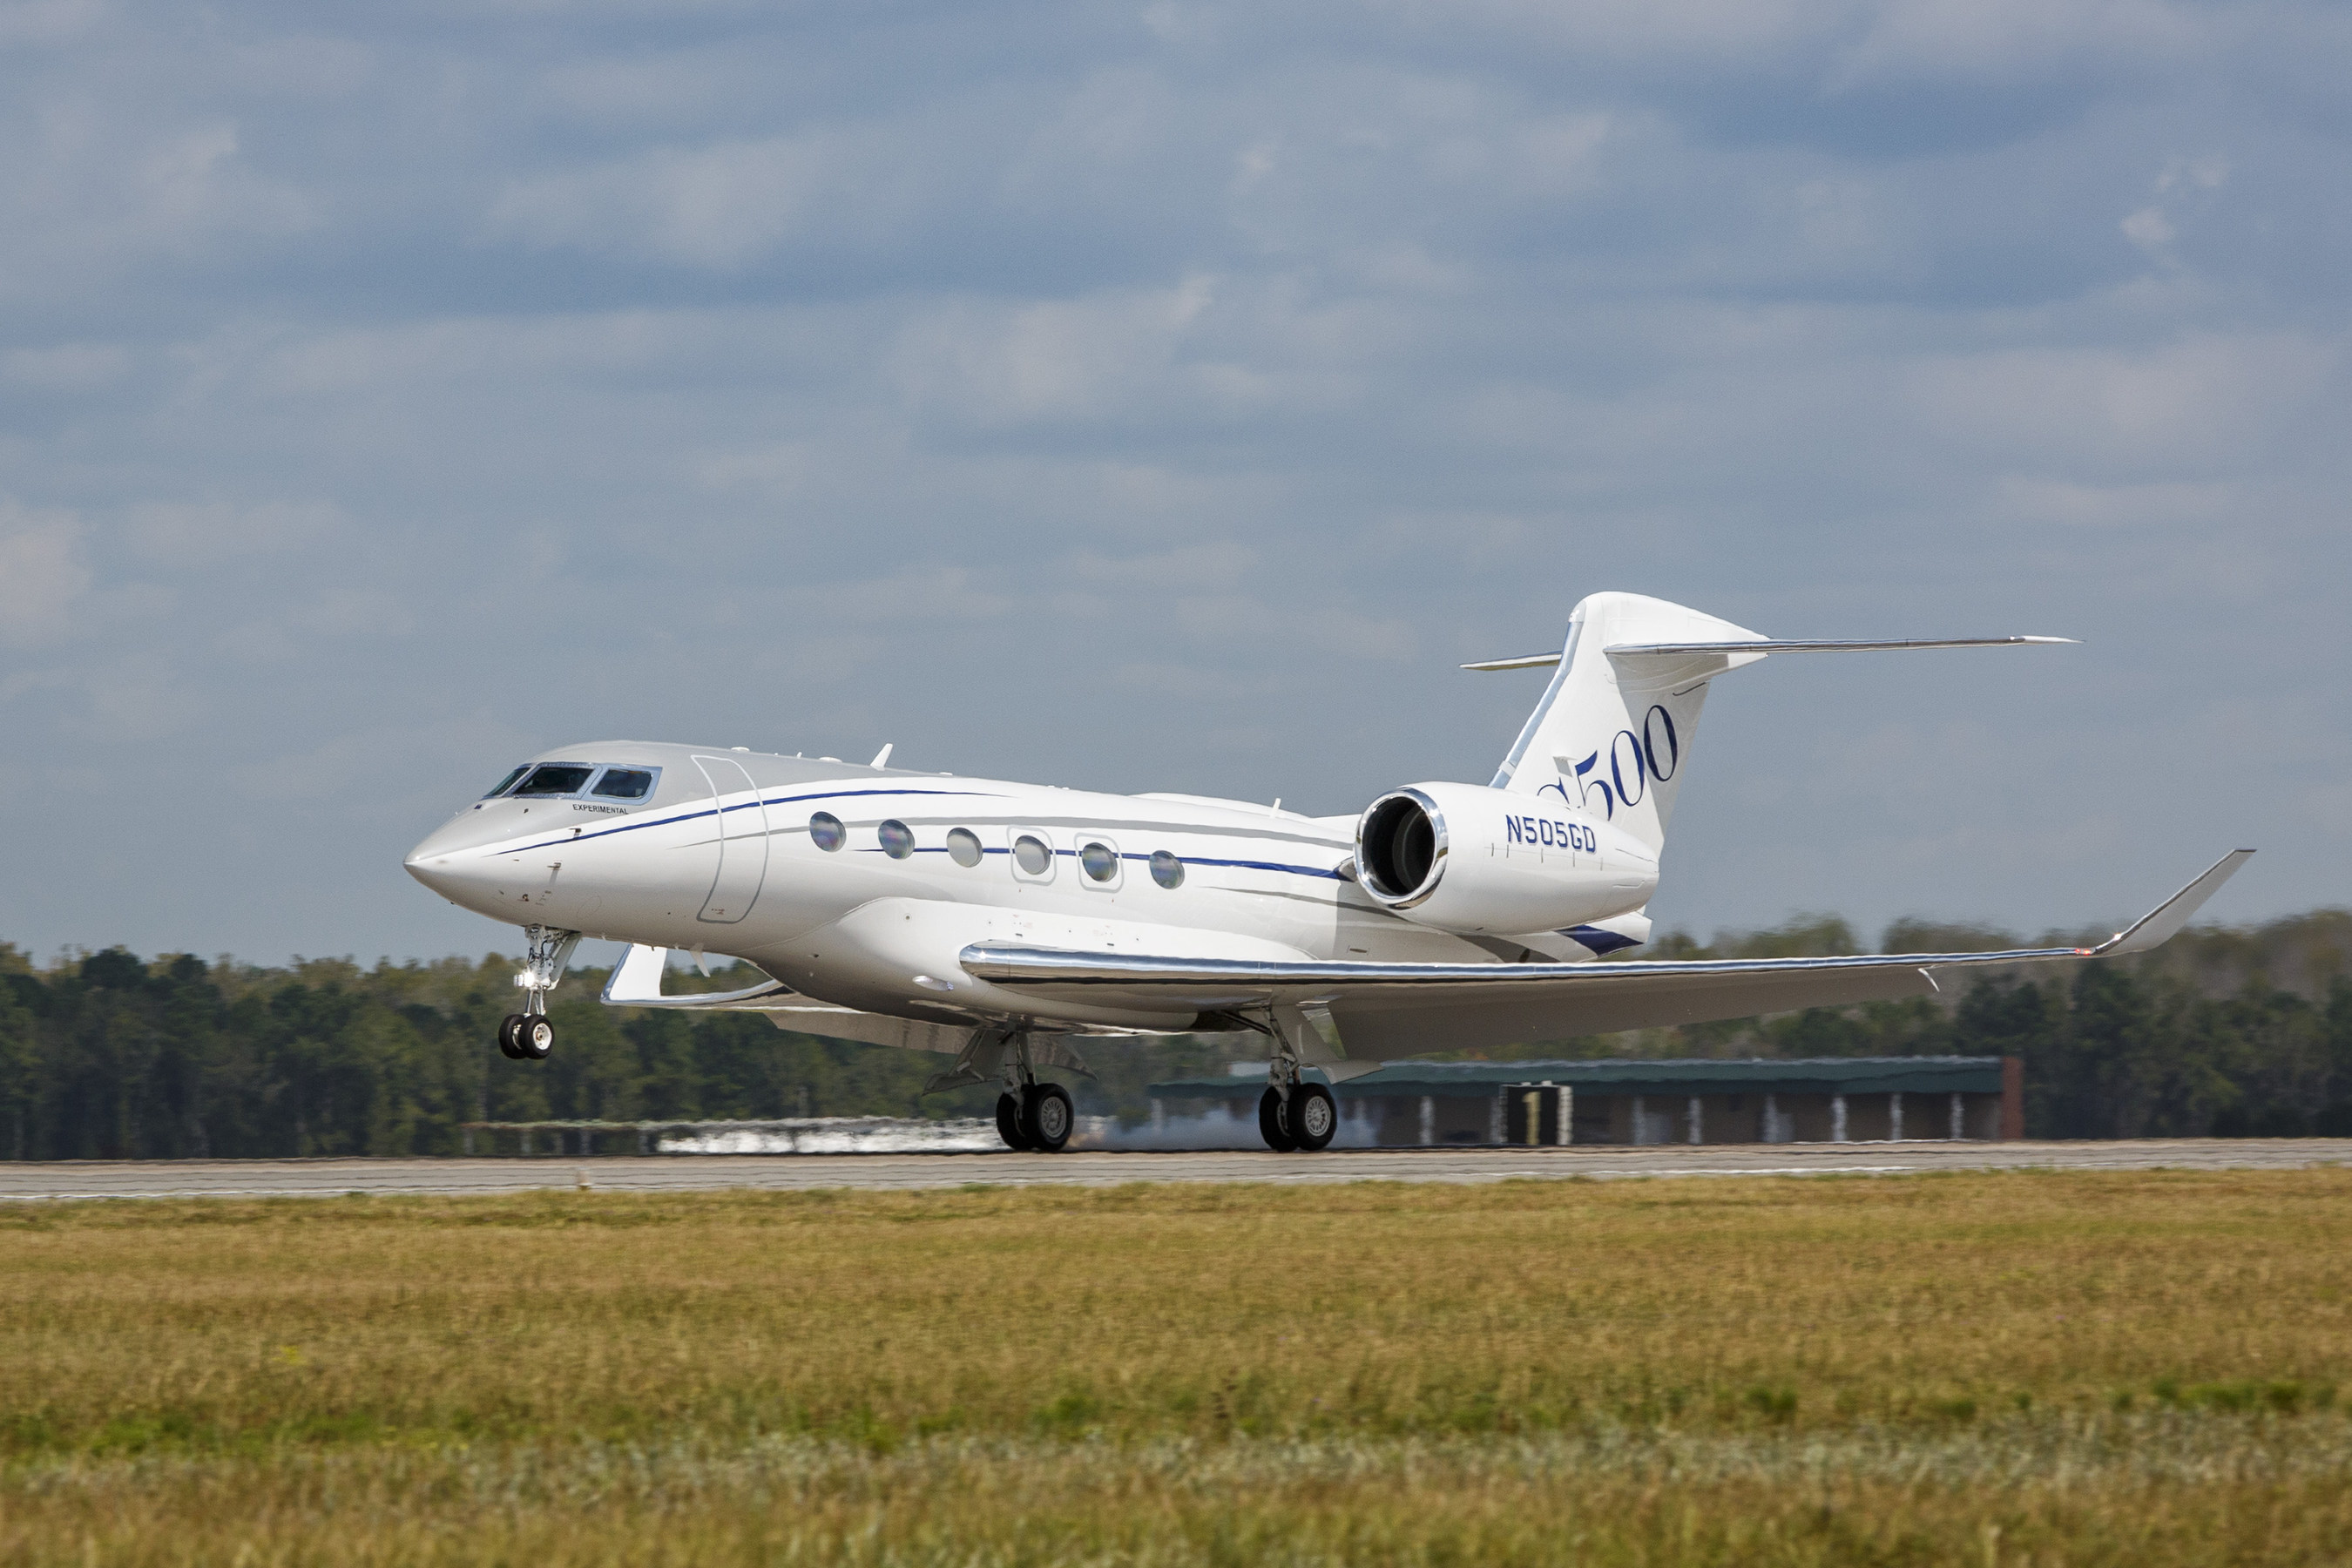 Gulfstream Aerospace Corp. today announced that the fifth Gulfstream G500 test aircraft has completed its first flight. The aircraft is the first production test aircraft to be outfitted with a full interior and serves as the testbed for the cabin.